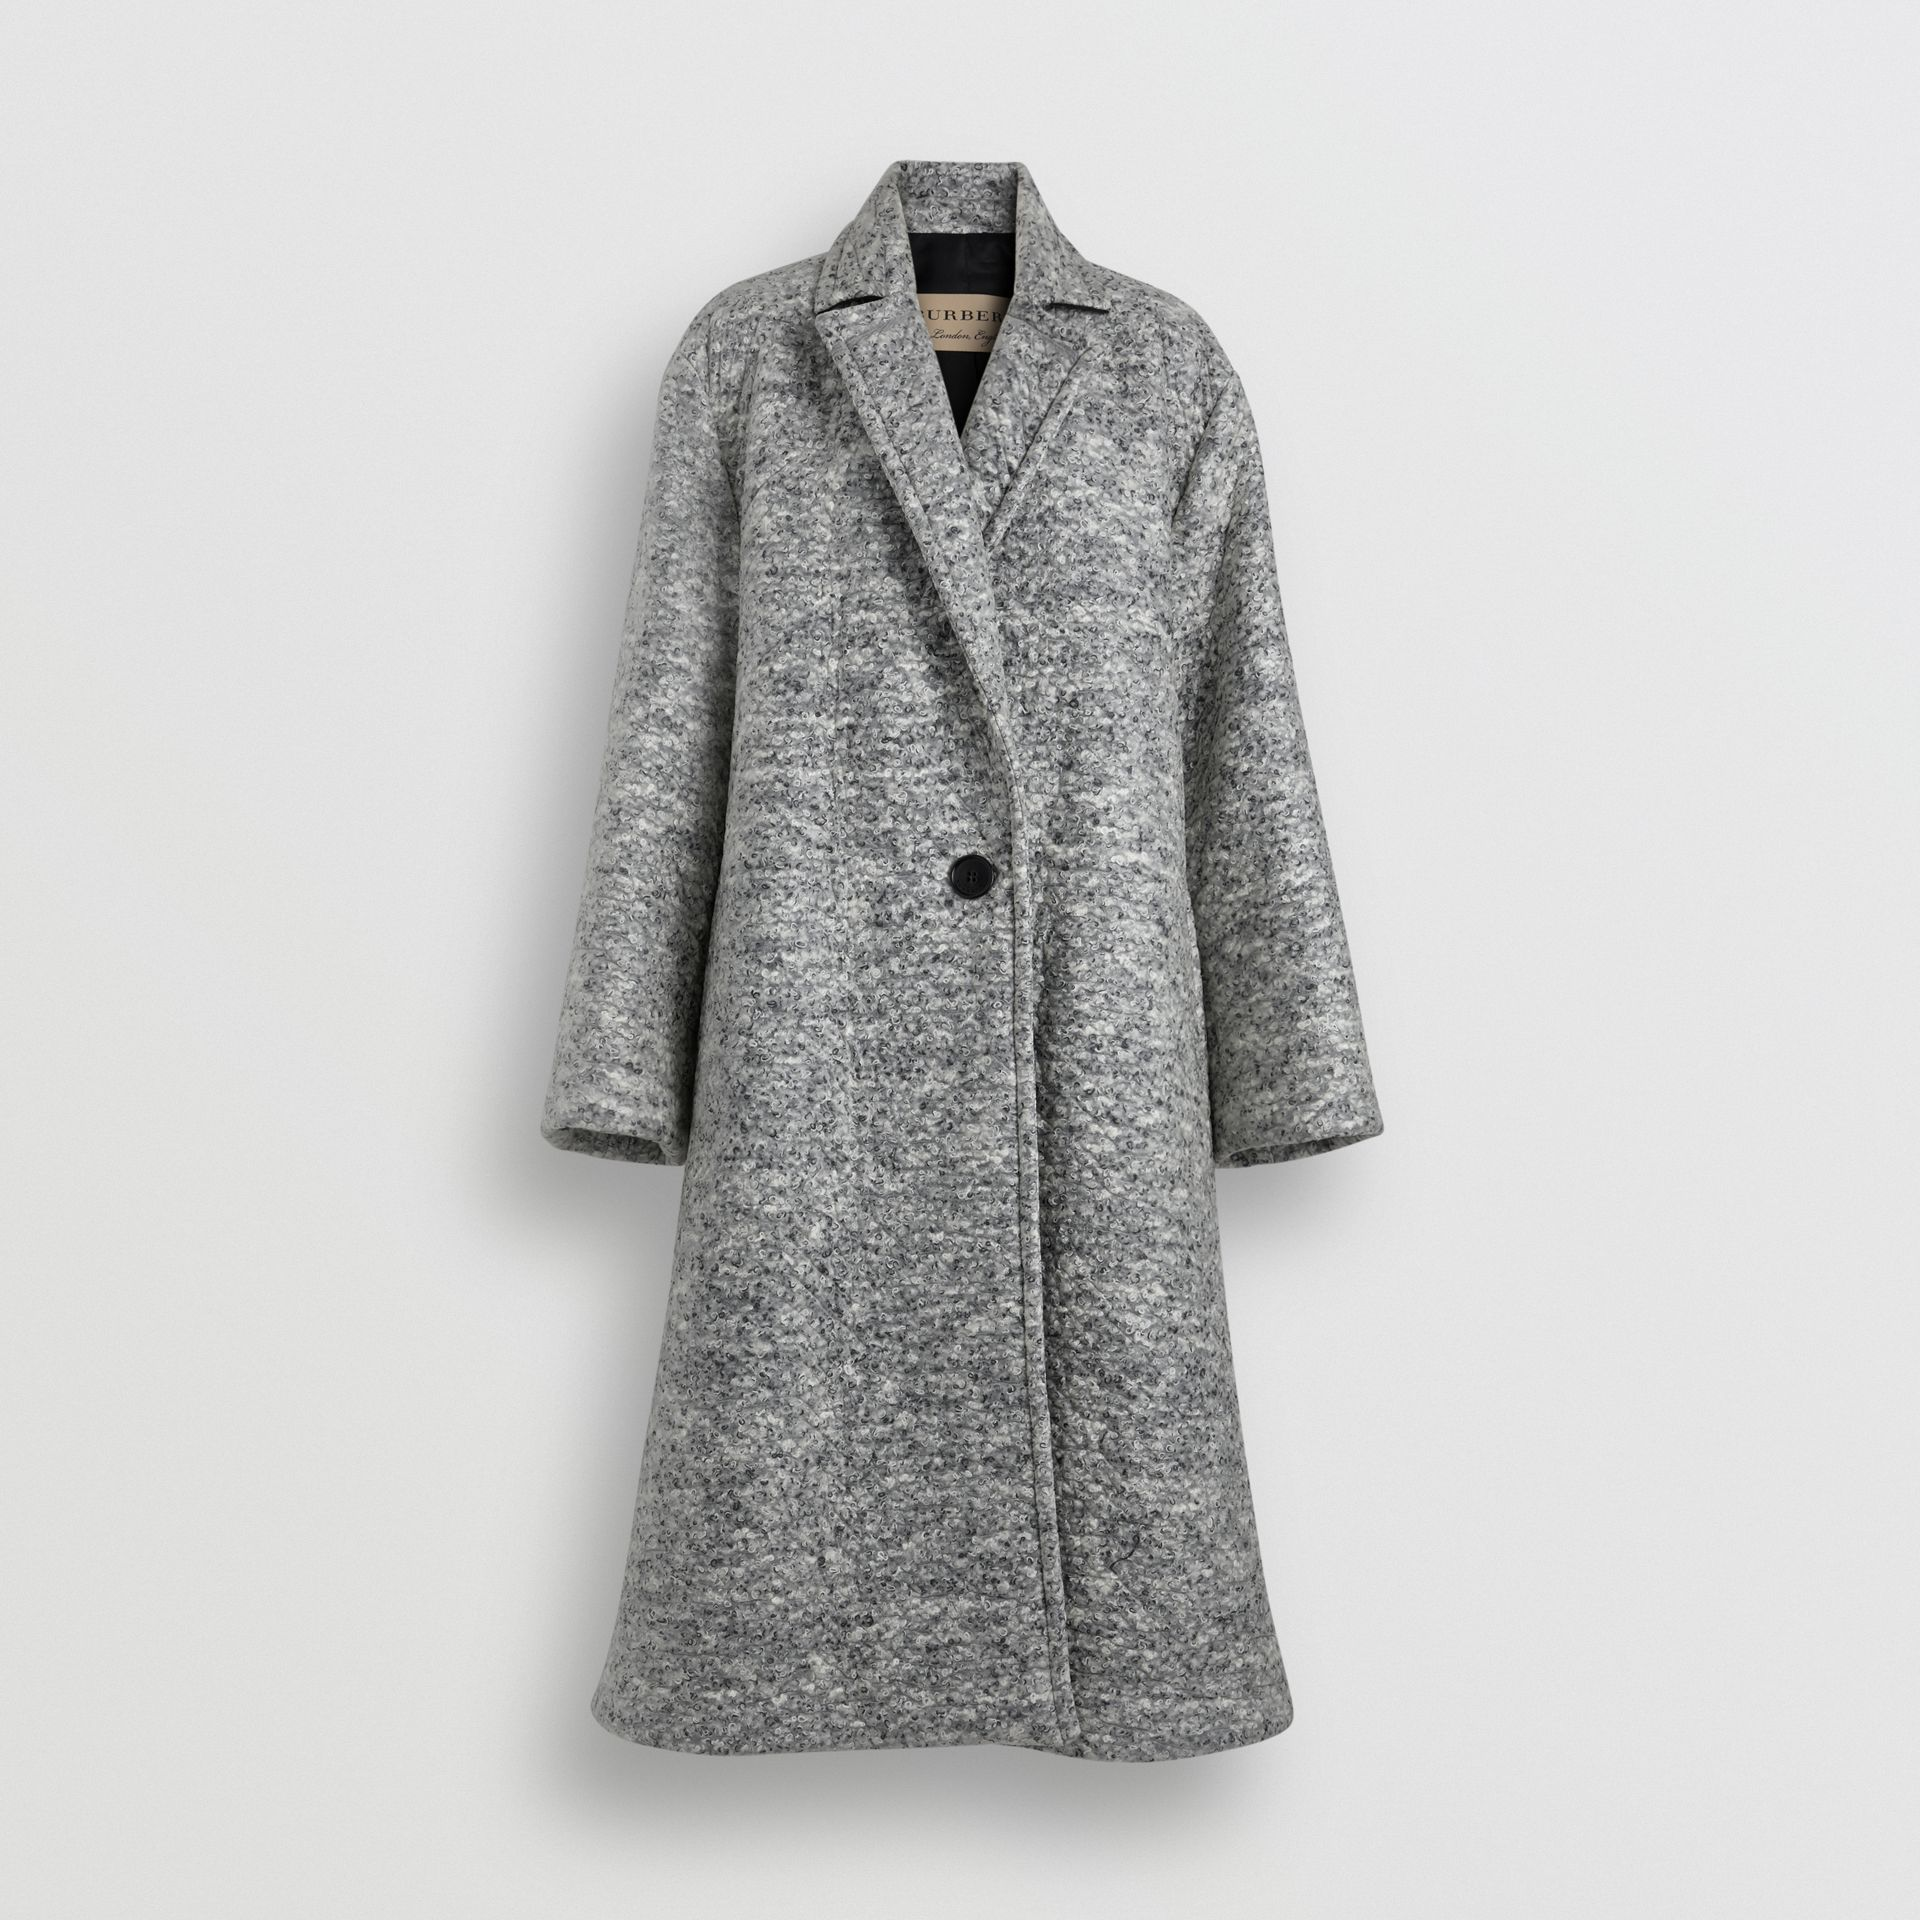 Laminated Cashmere Wool Blend A-line Coat in Grey Melange - Women | Burberry - gallery image 3